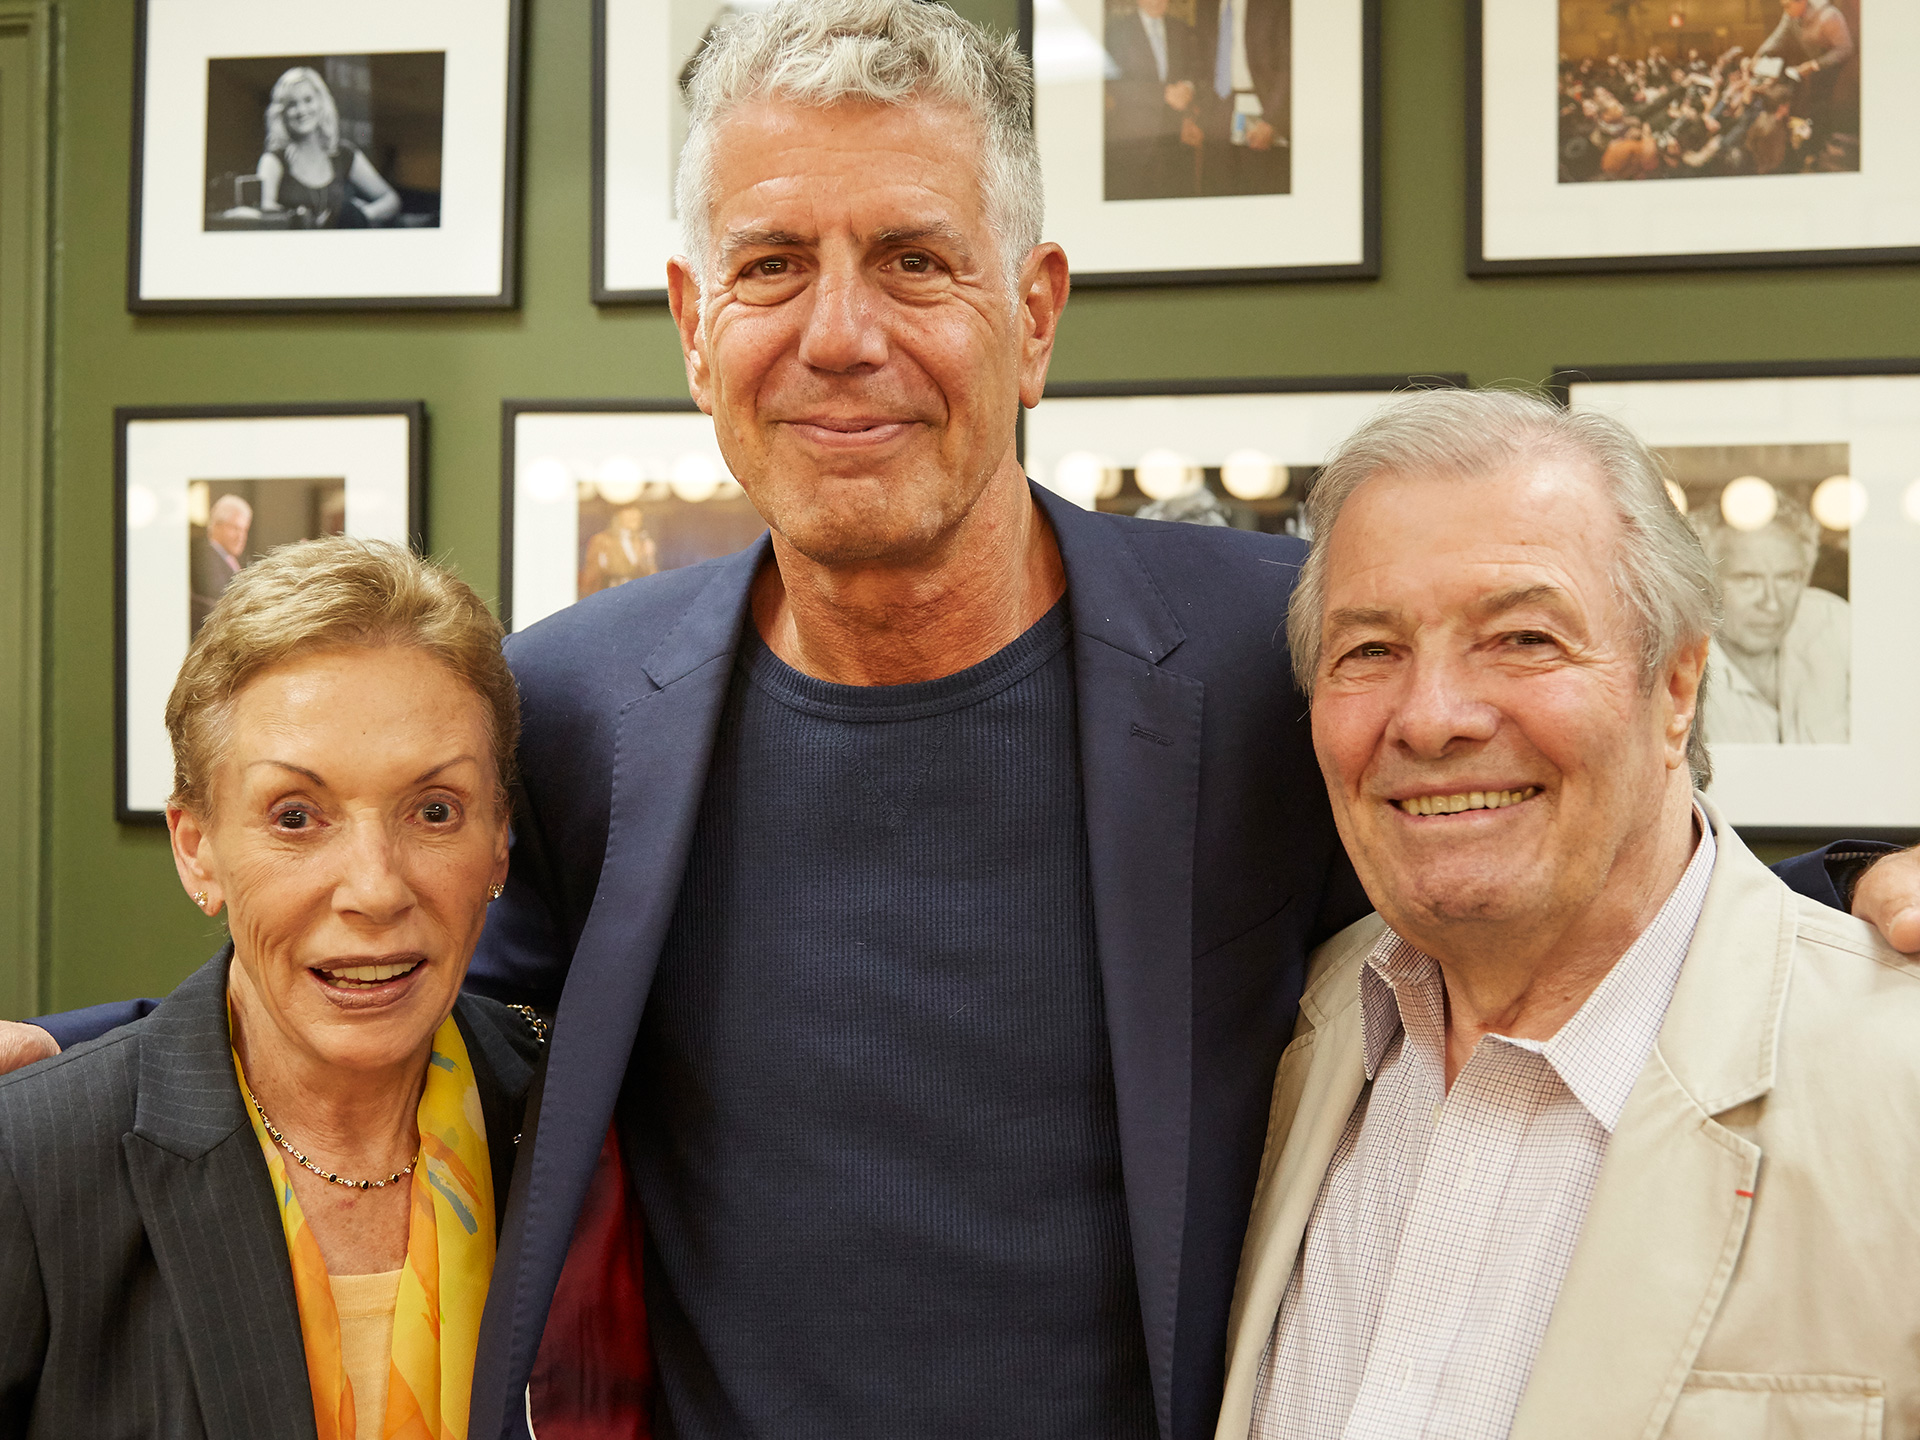 "Gloria Pépin, Anthony Bourdain and Jacques Pépin at event in October 2015 at the 92nd Street Y in New York City. Tony moderated a discussion about Jacques"" book Heart and Soul."